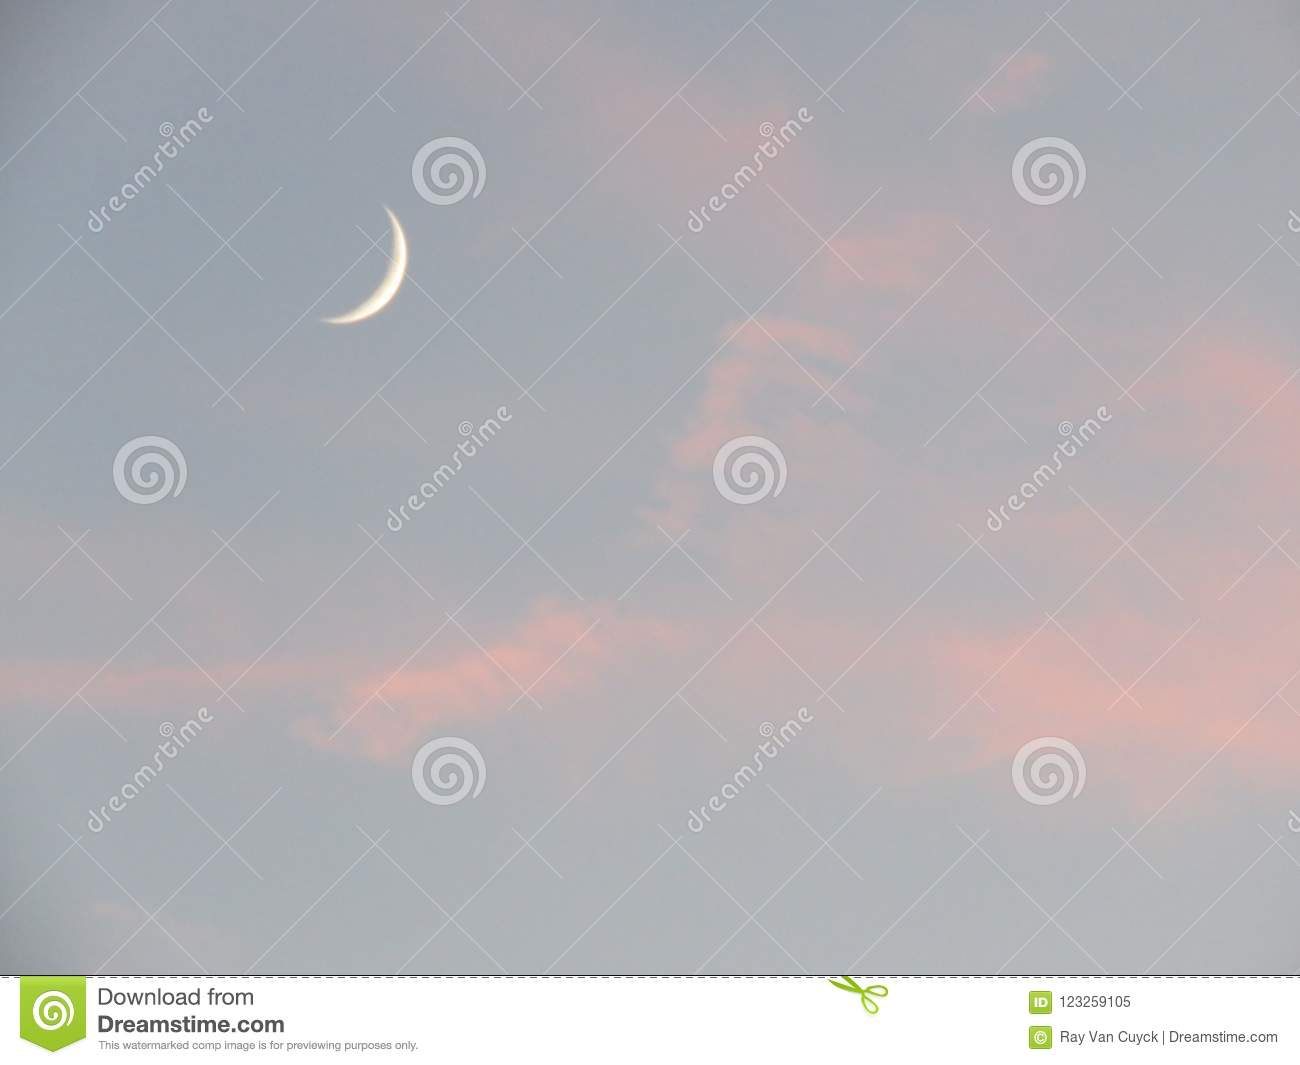 A small Cheshire cat smile moon